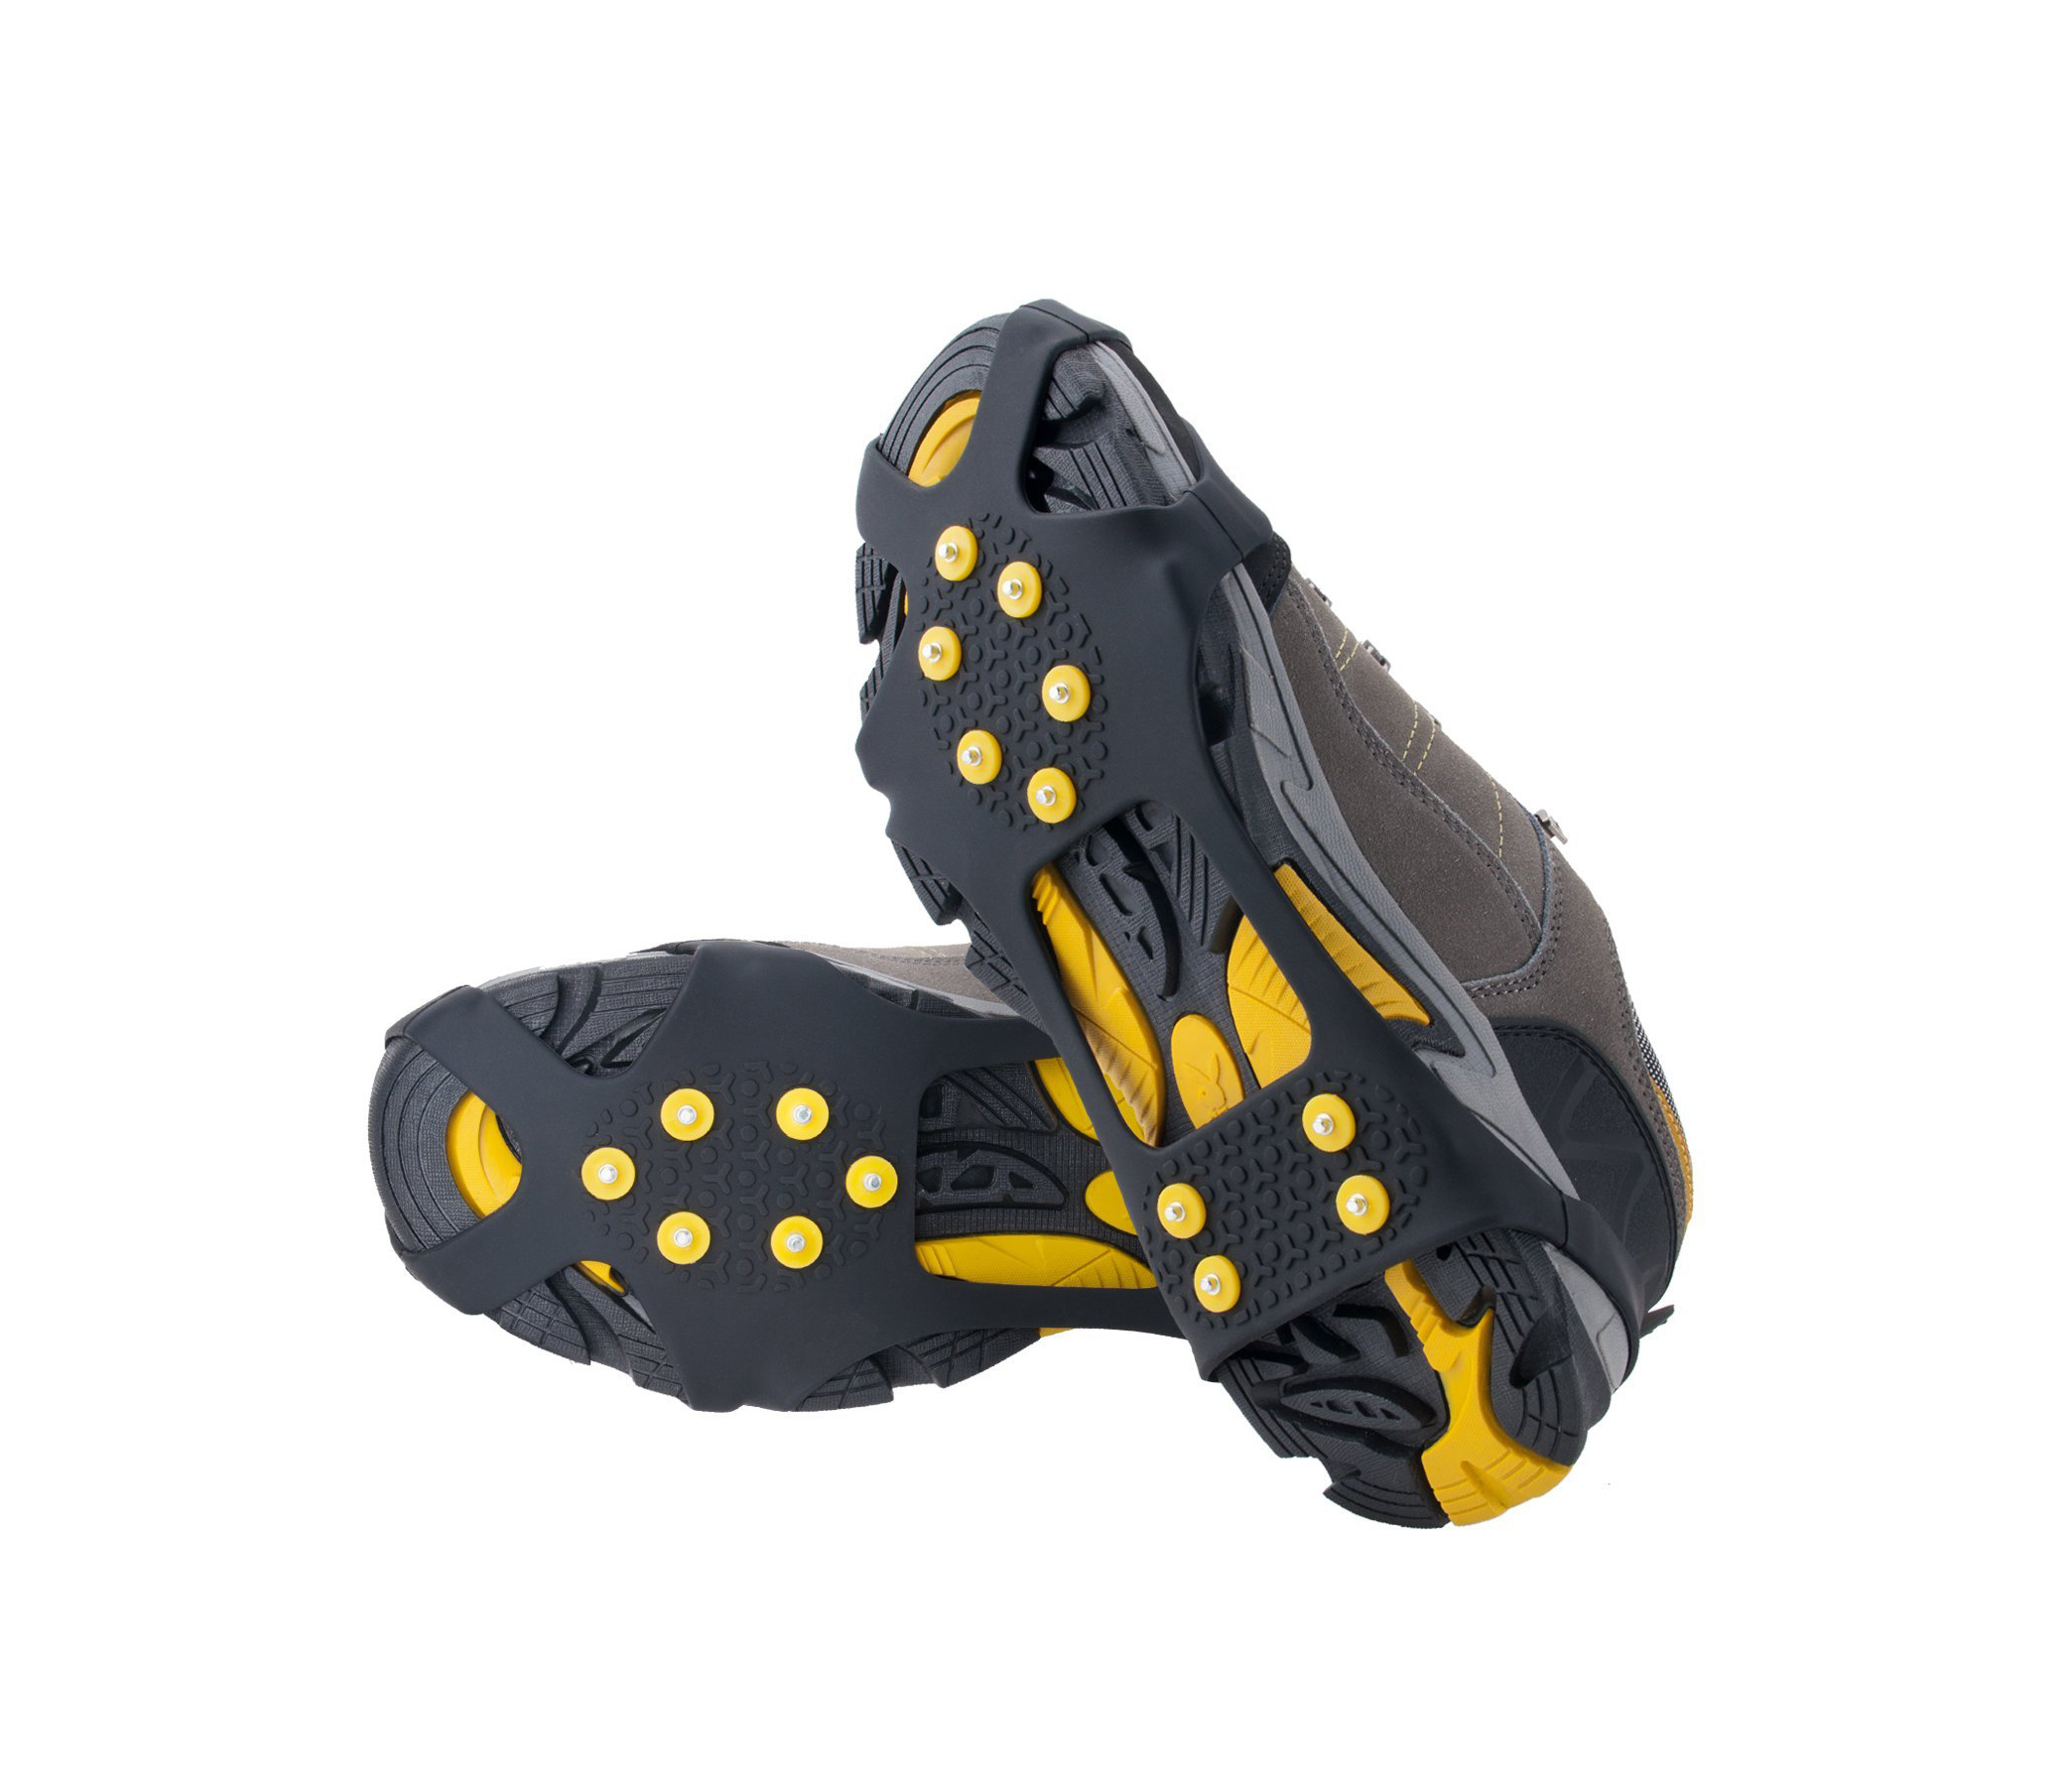 best ice cleats for running